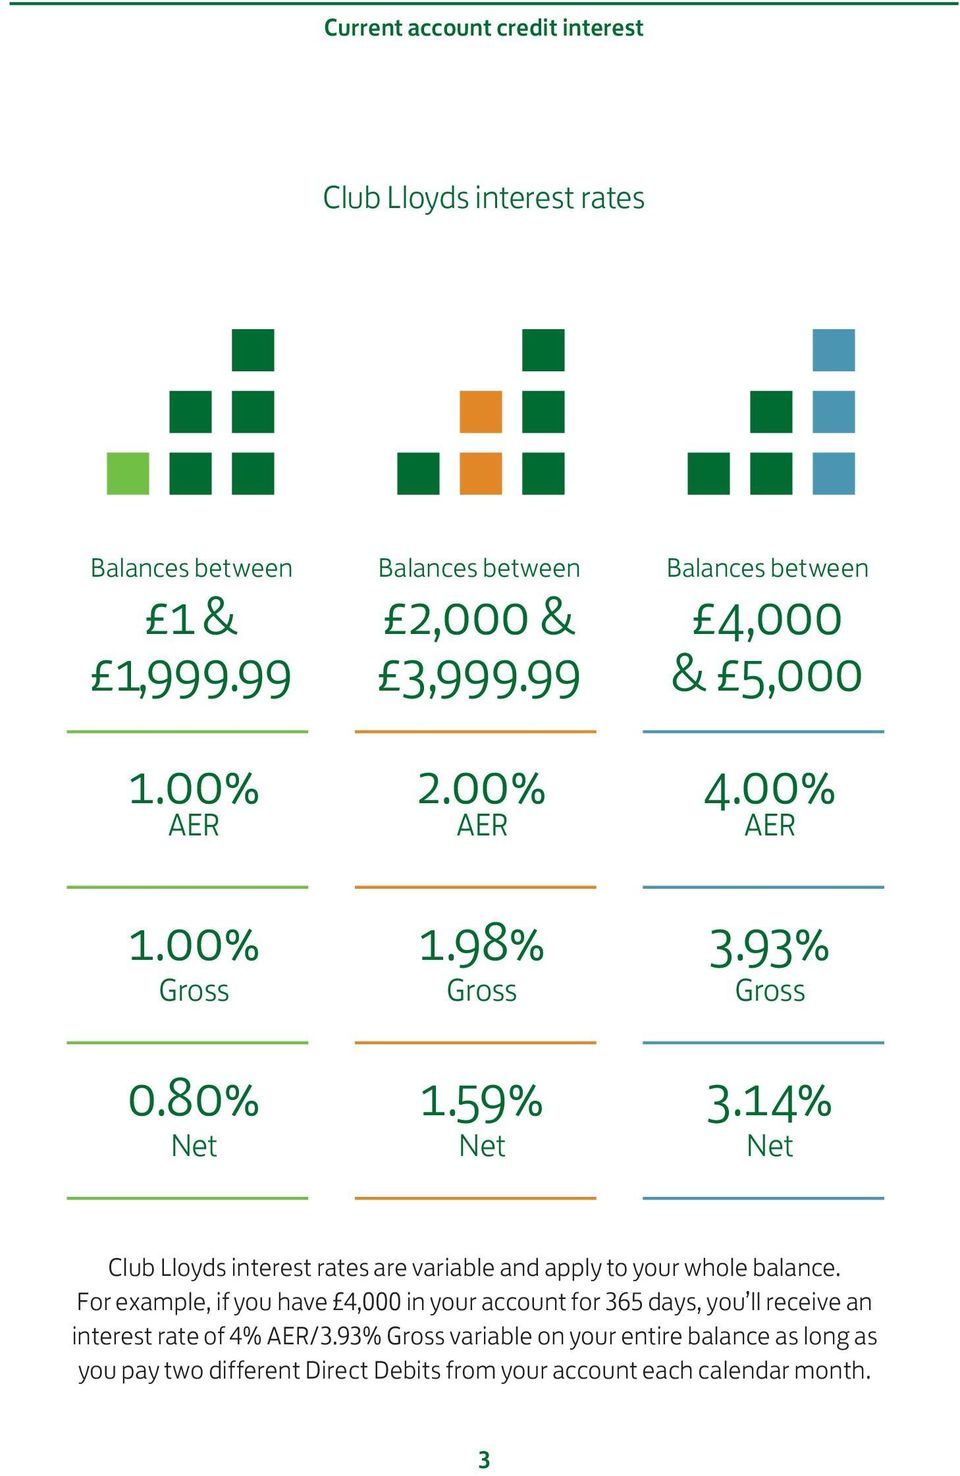 14% Net Club Lloyds interest rates are variable and apply to your whole balance.